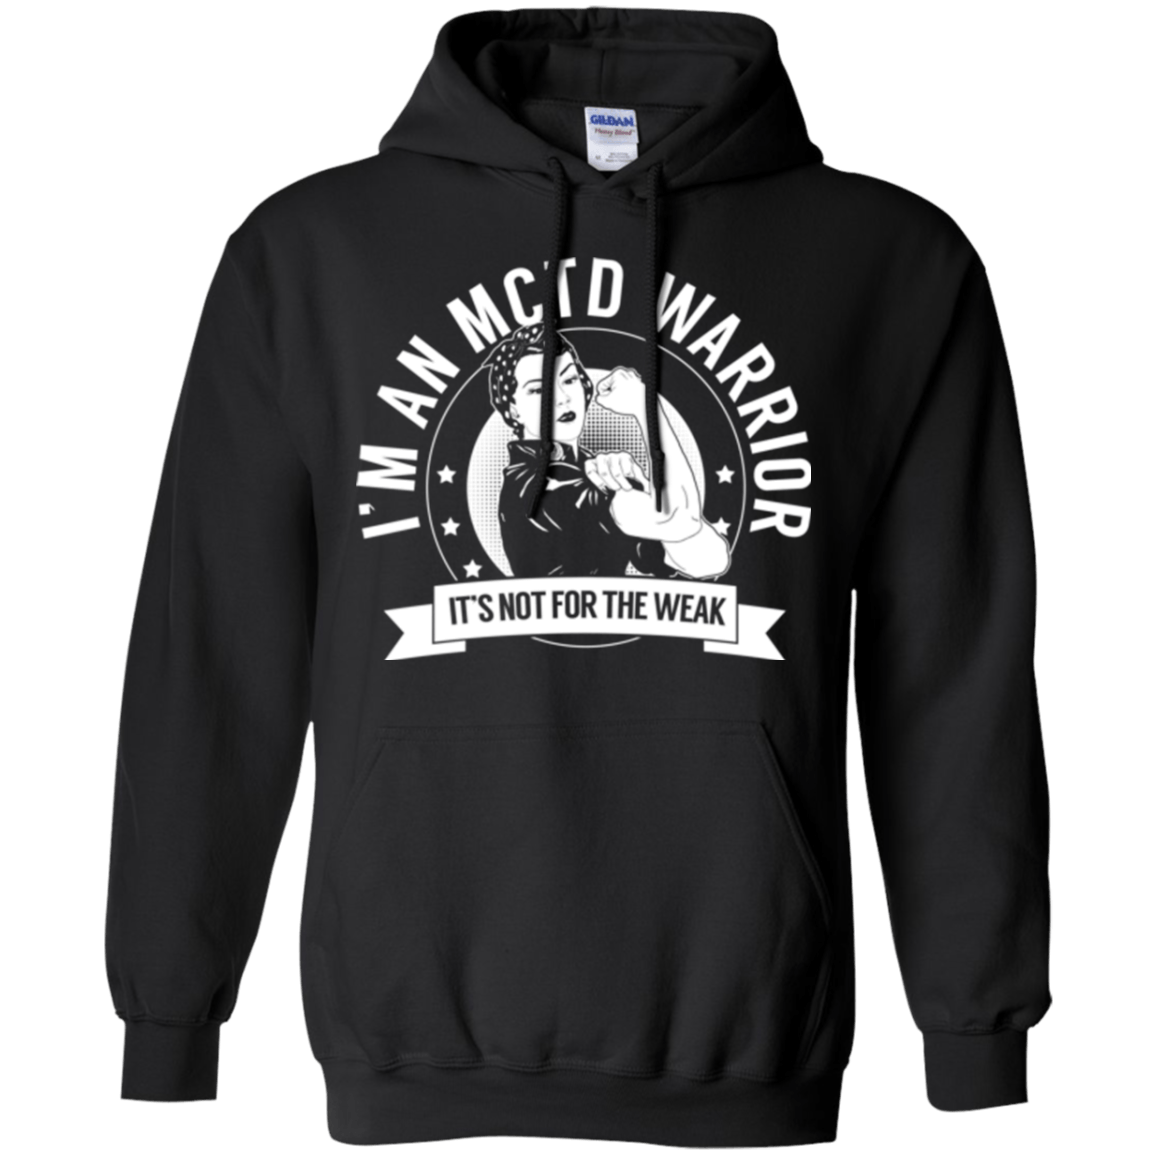 Sweatshirts - Mixed Connective Tissue Disease - MCTD Warrior Not For The Weak Pullover Hoodie 8 Oz.